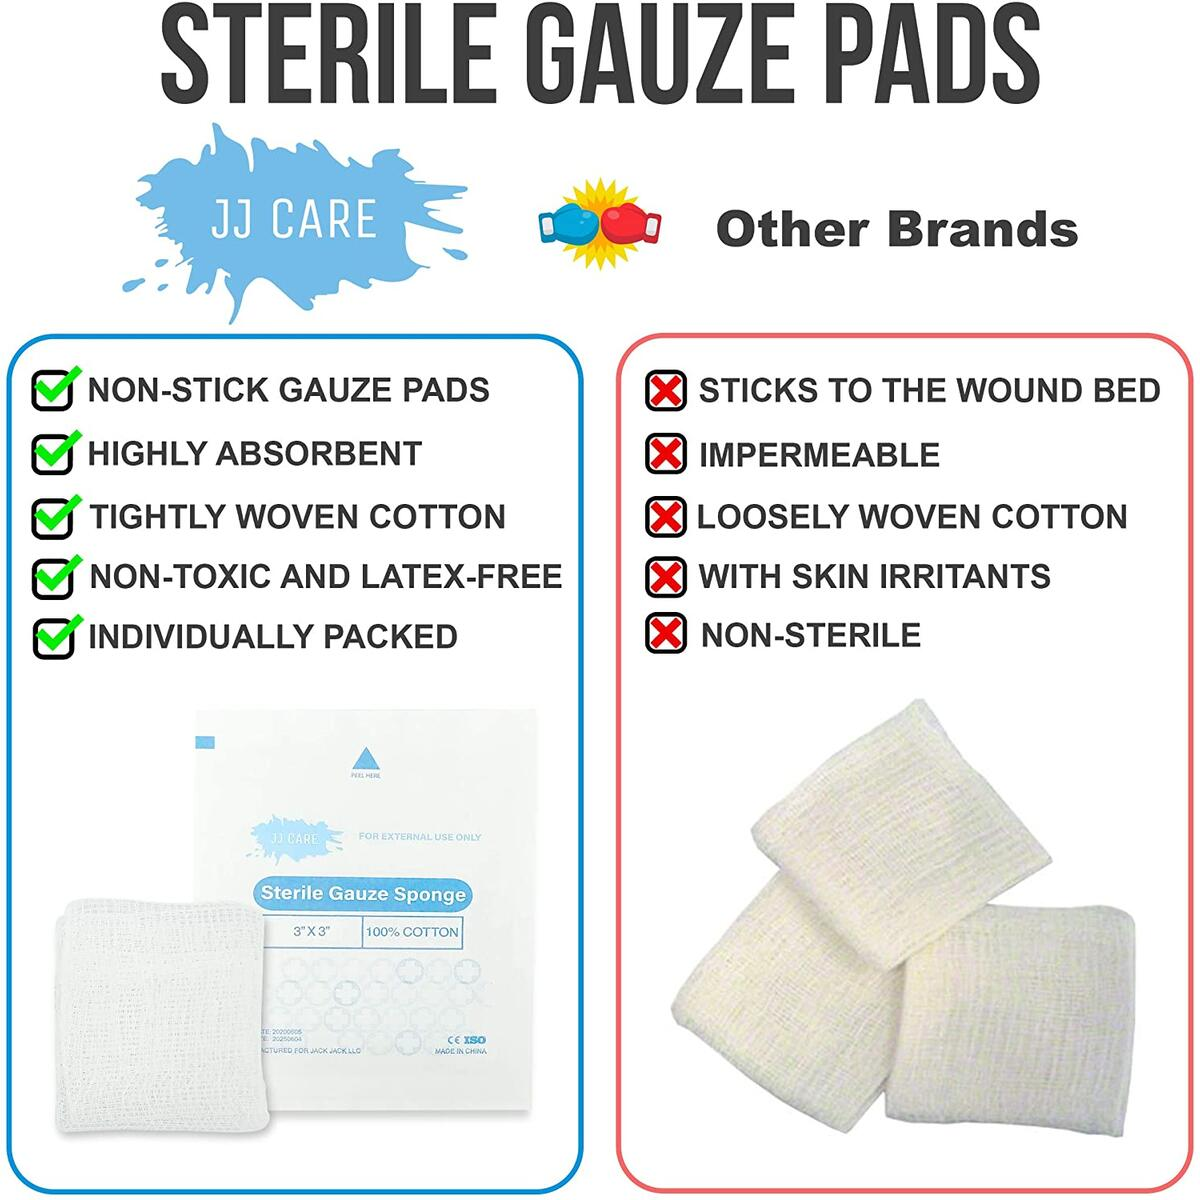 [Box of 100] 3x3 Sterile Gauze Pads 12-Ply Cotton Gauze Pads 3x3, 100% Woven Gauze Sponges, Individually-Wrapped Sterile Gauze Sponges, Non-Stick Gauze Pads for First Aid Kit and Wound Care